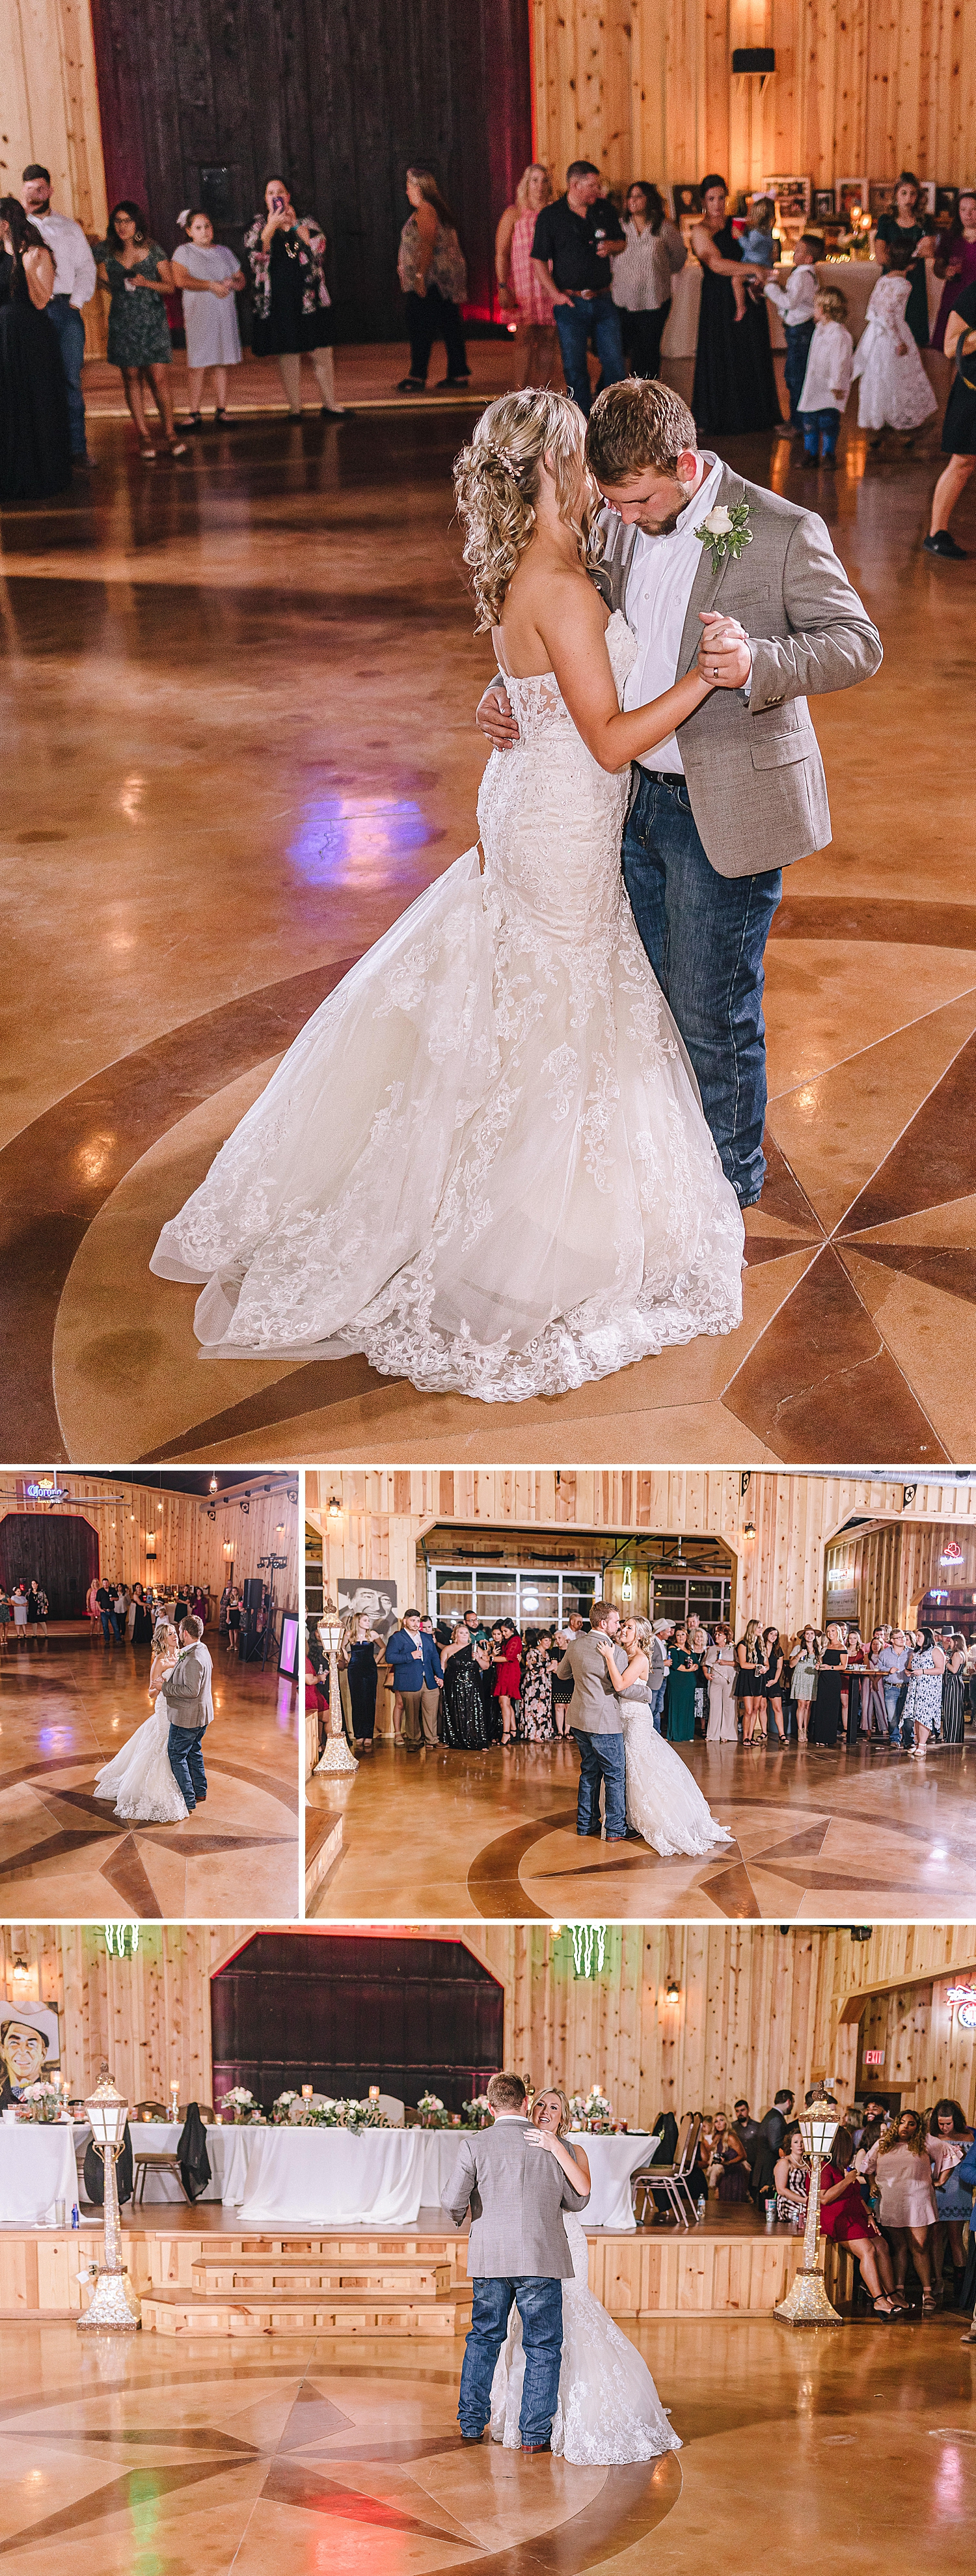 Rackler-Ranch-LaVernia-Texas-Wedding-Carly-Barton-Photography_0134.jpg